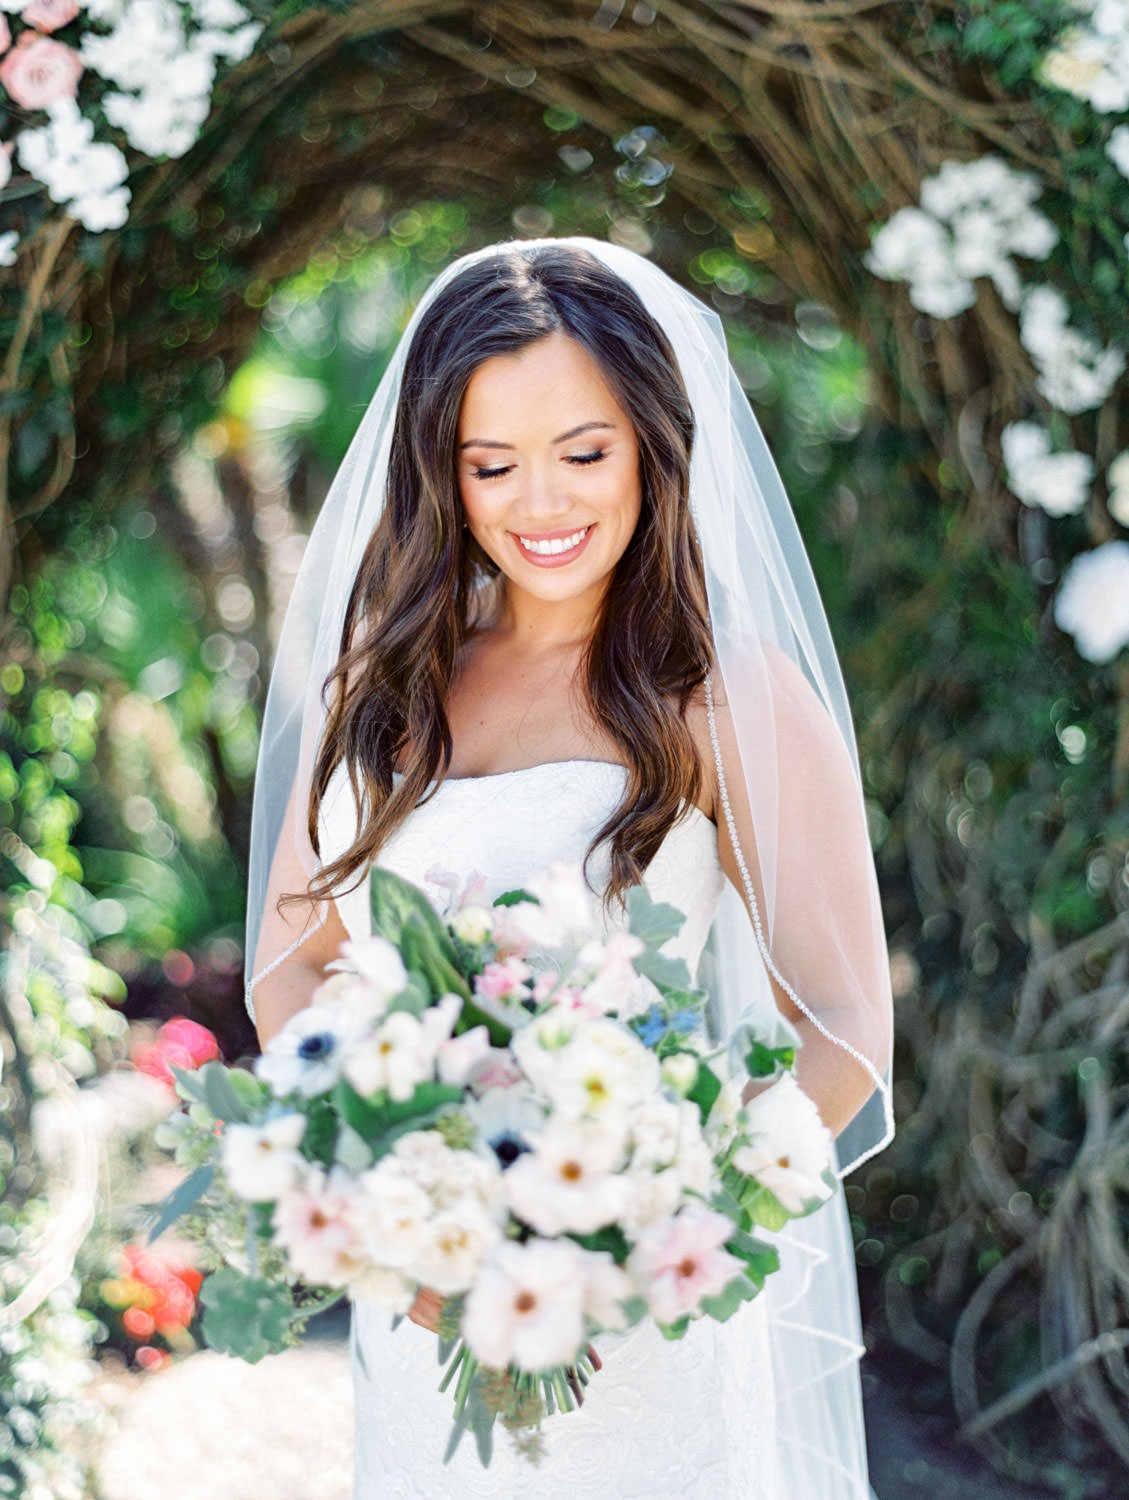 Bridal portrait with veil and train in front of floral arch on film. Bride's bouquet with anemones, greenery, and roses. Wedding at Humphreys Half Moon Inn by Cavin Elizabeth Photography